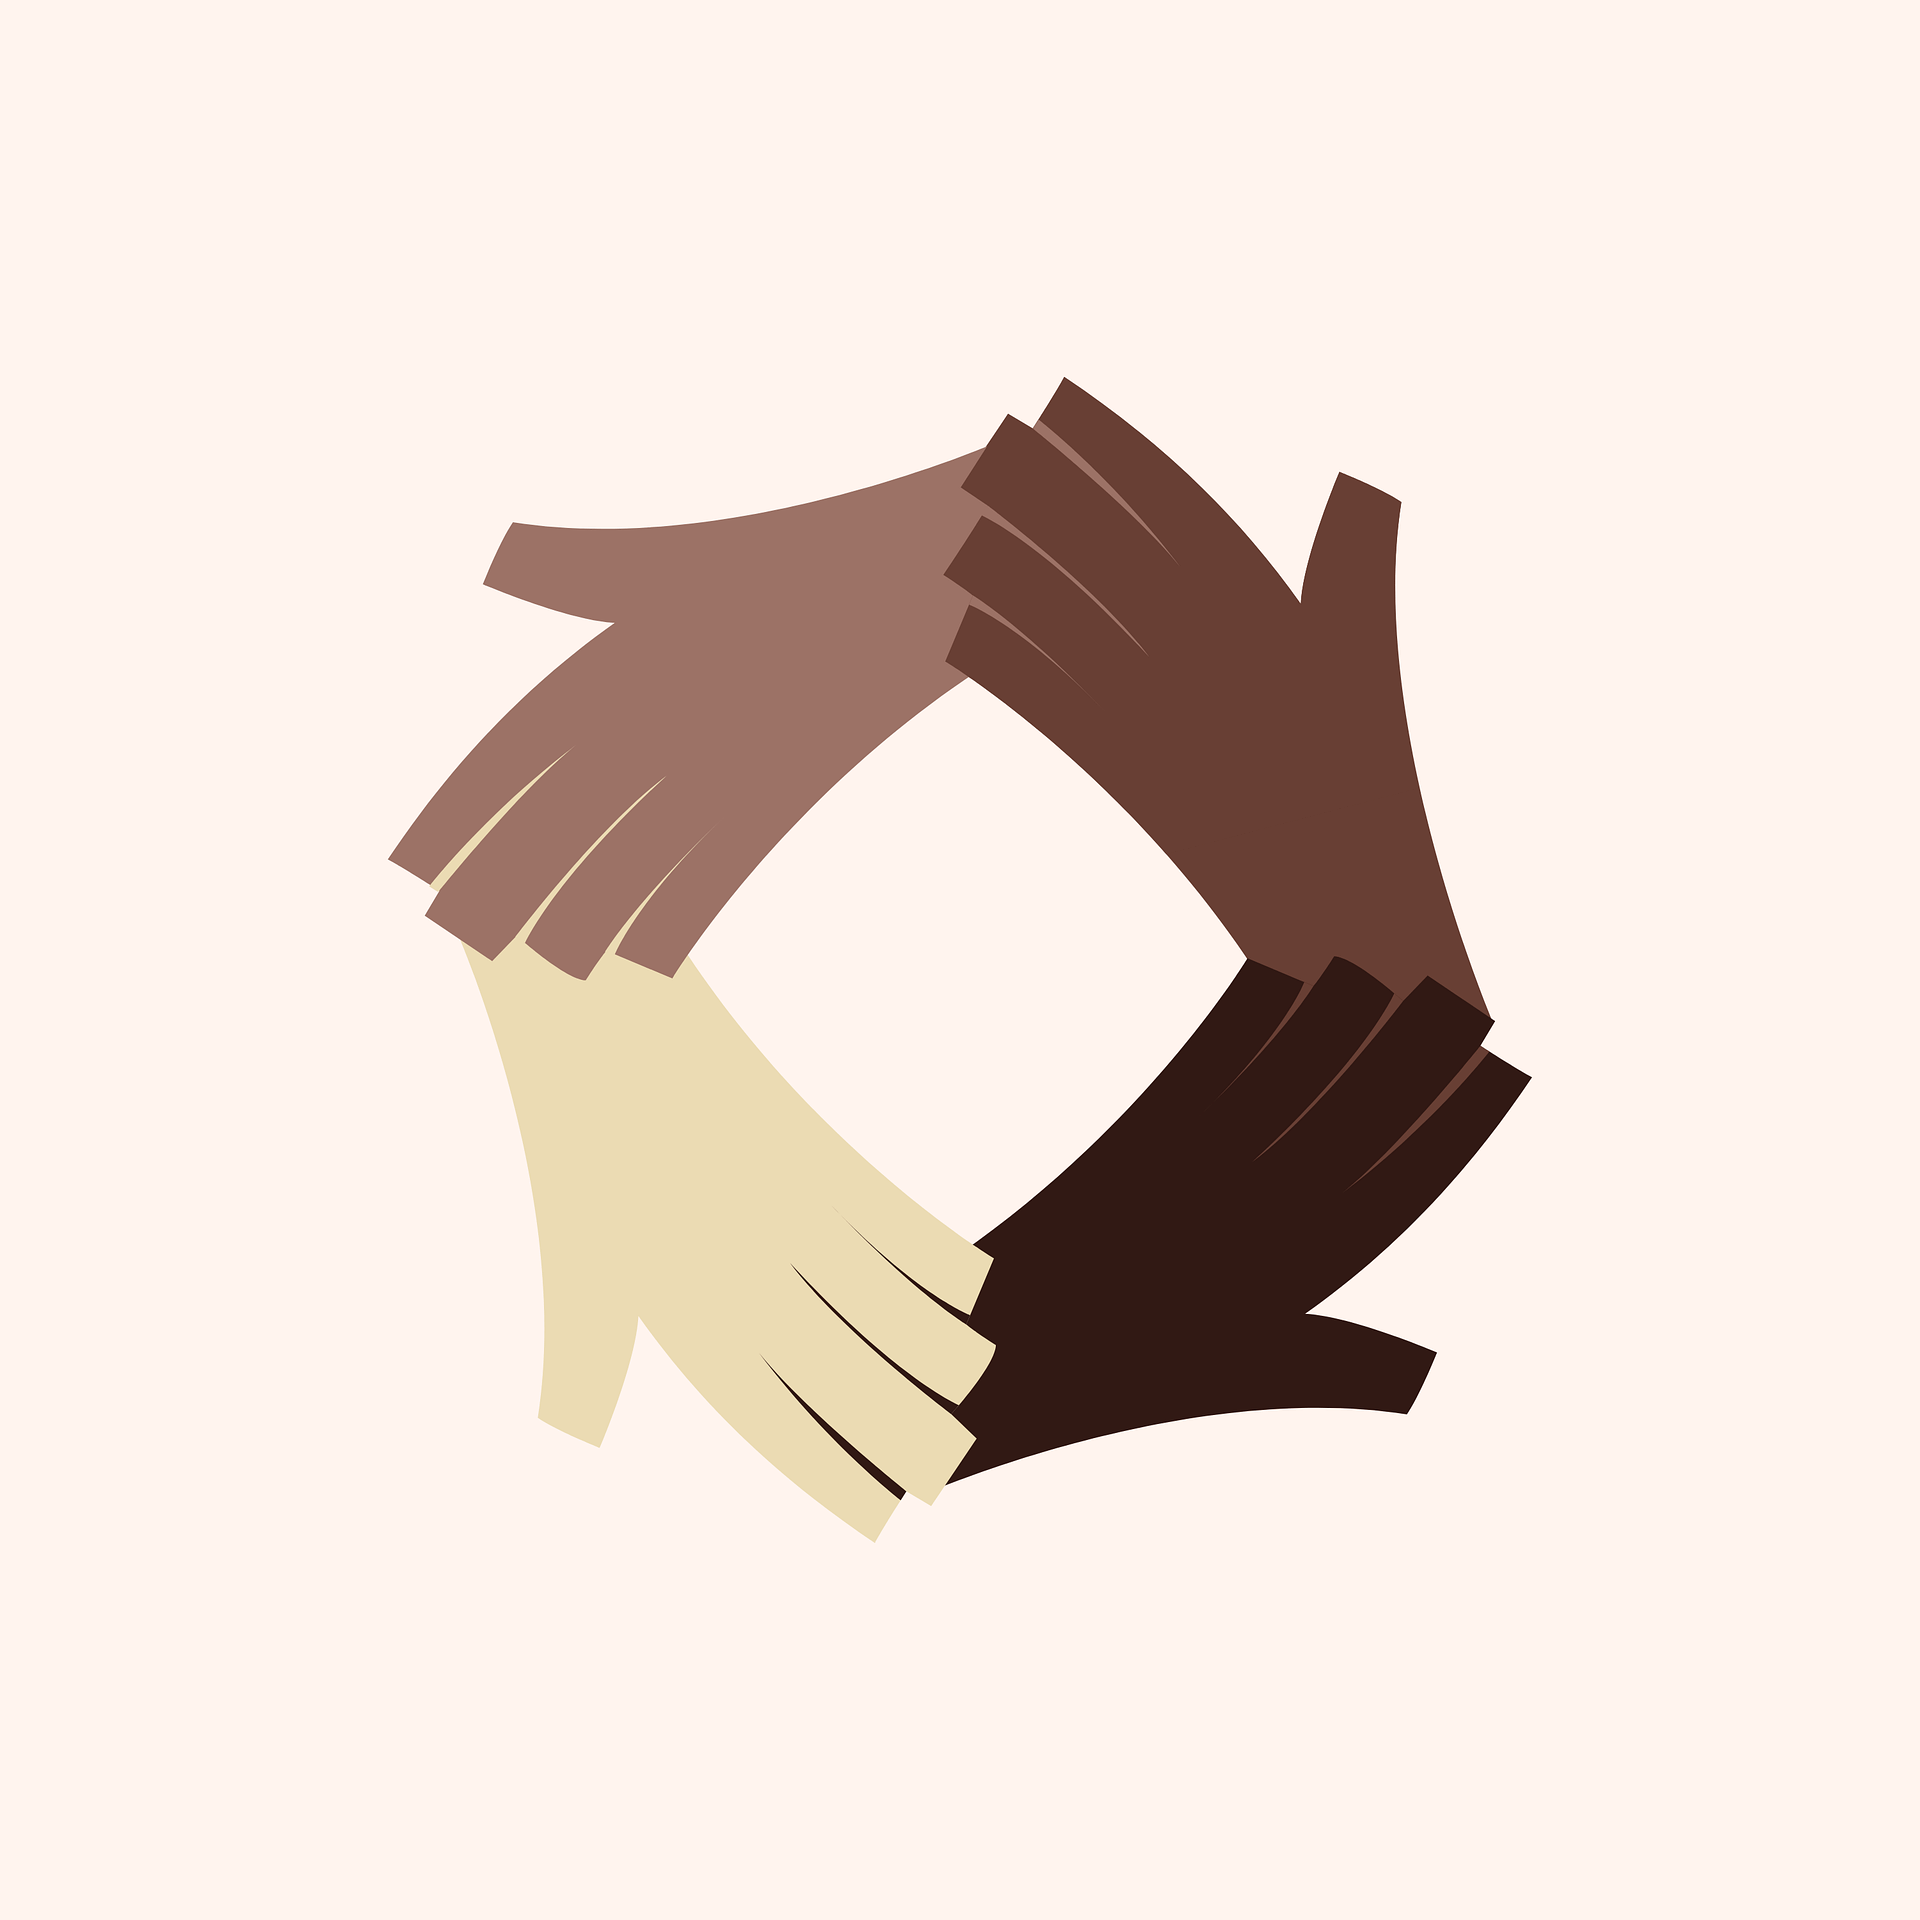 digital image of four hands holding each other in a circle of different skin tones